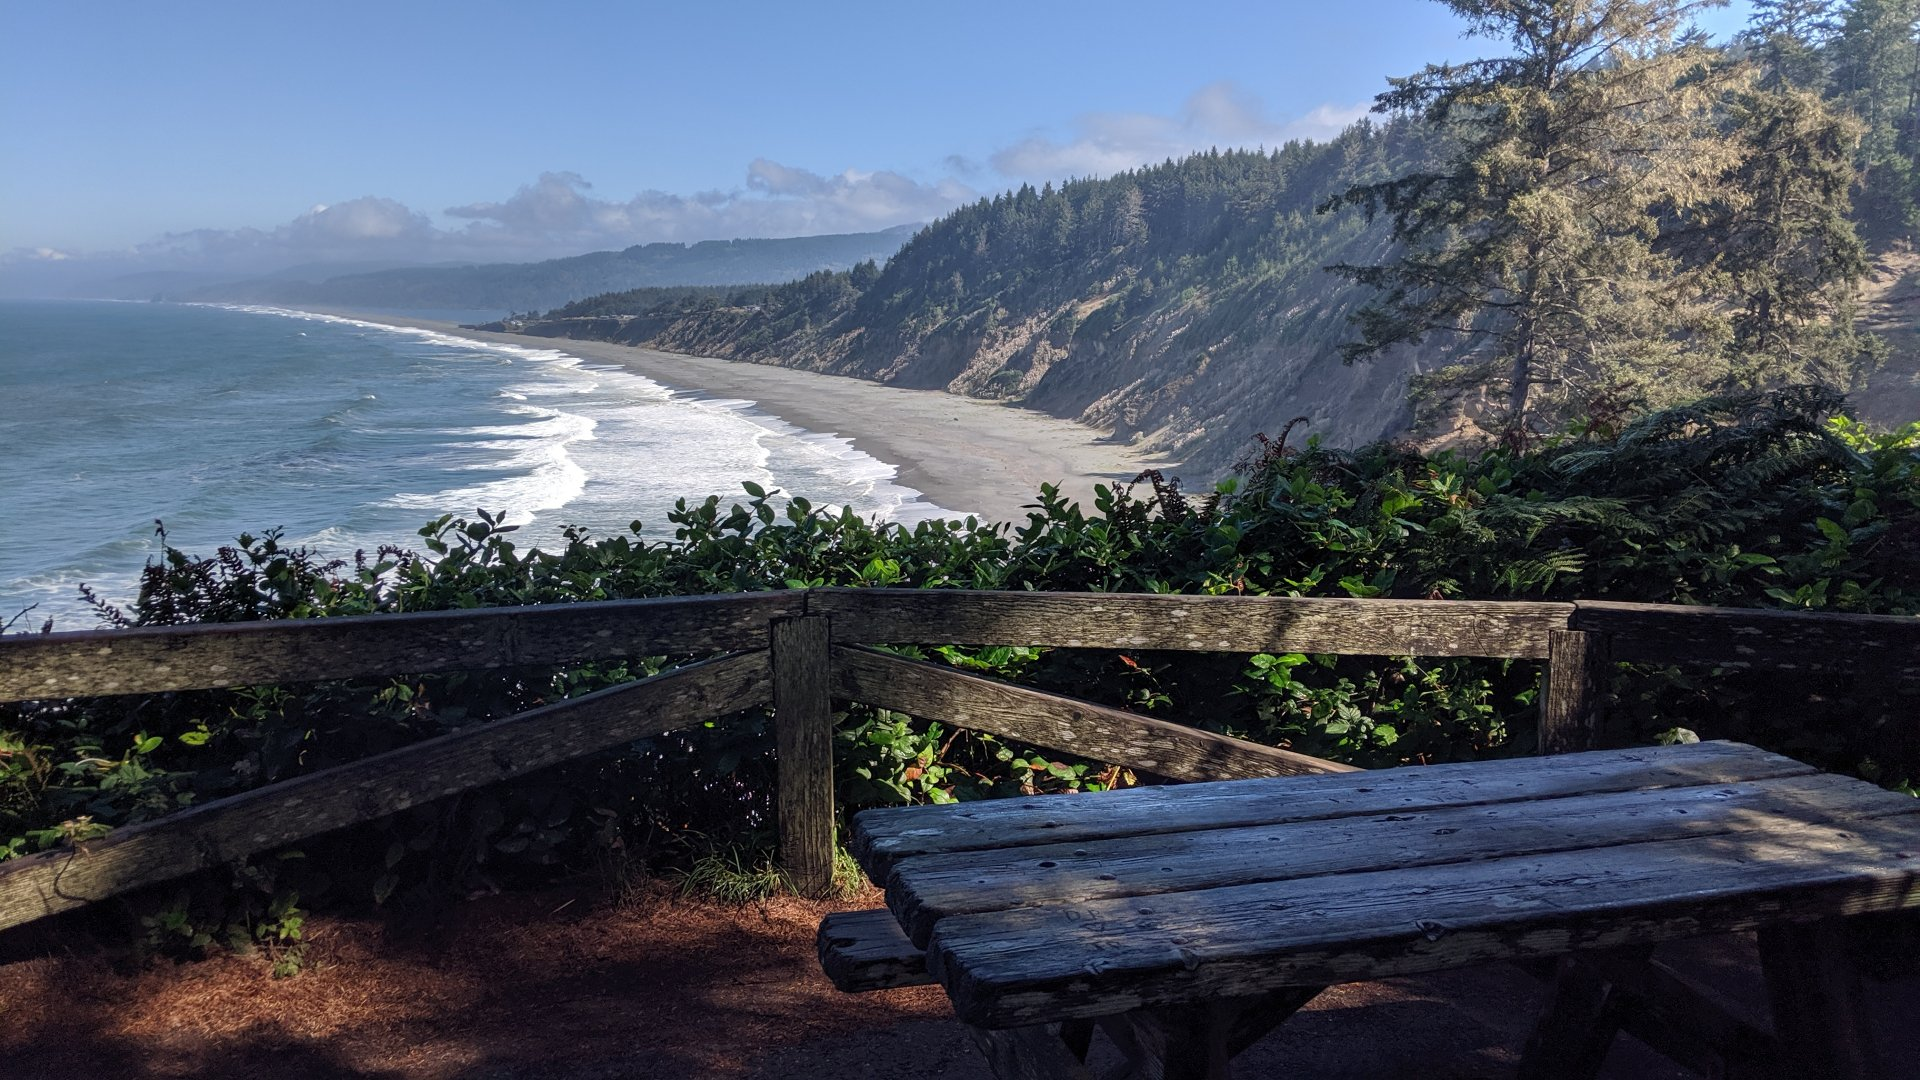 Agate Beach is littered with semi-precious stones, and seems to stretch beyond the limits of our vision. This table makes a fine rest spot after the steep climb up from the beach. | Photo by Jett Williams